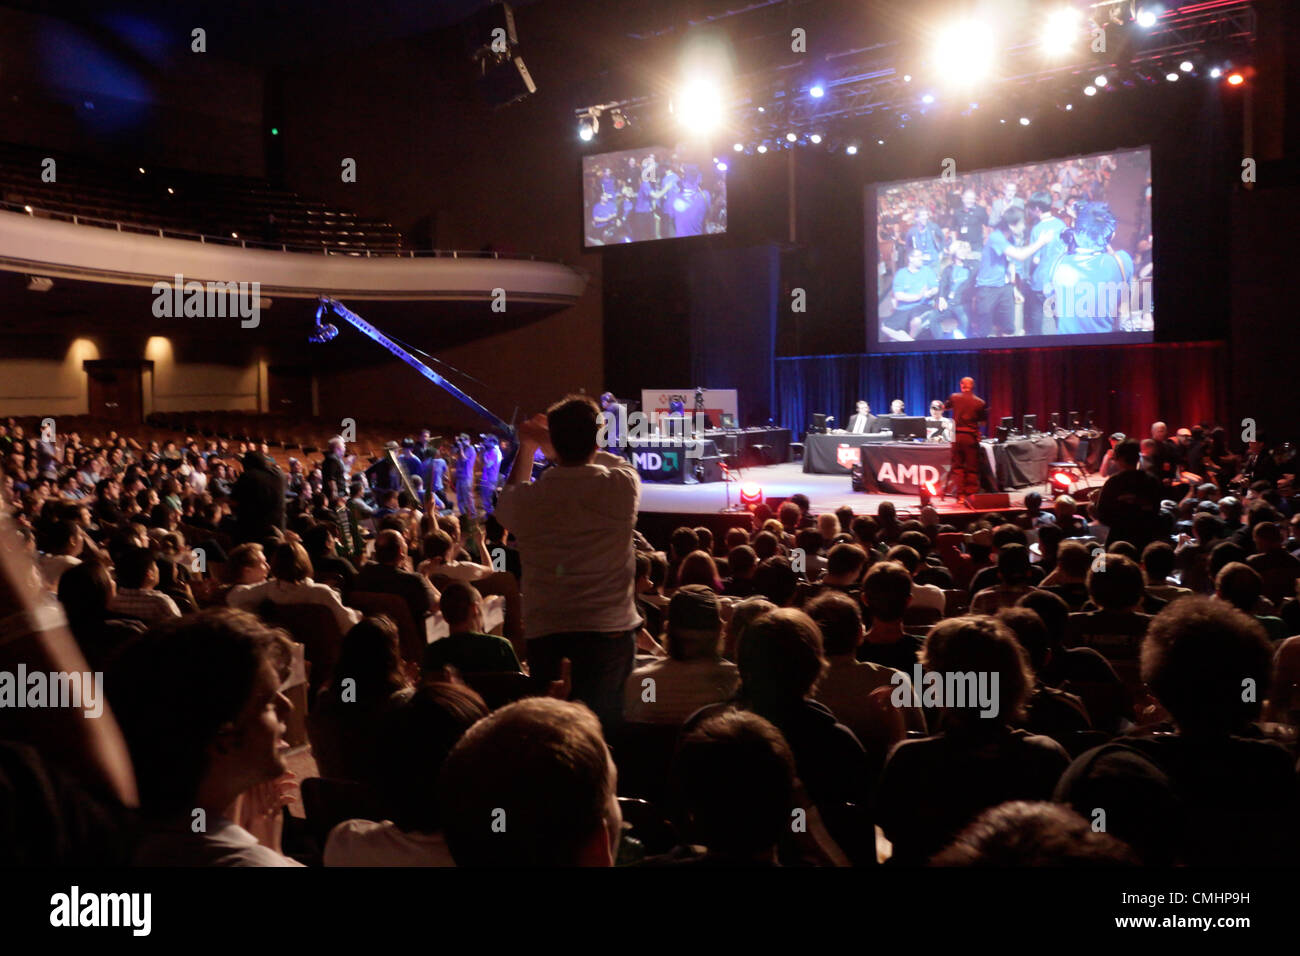 August 11, 2012. San Francisco, USA. IPL Faceoff, Starcraft 2 Team League Arena at Masonic Center in San Francisco. - Stock Image